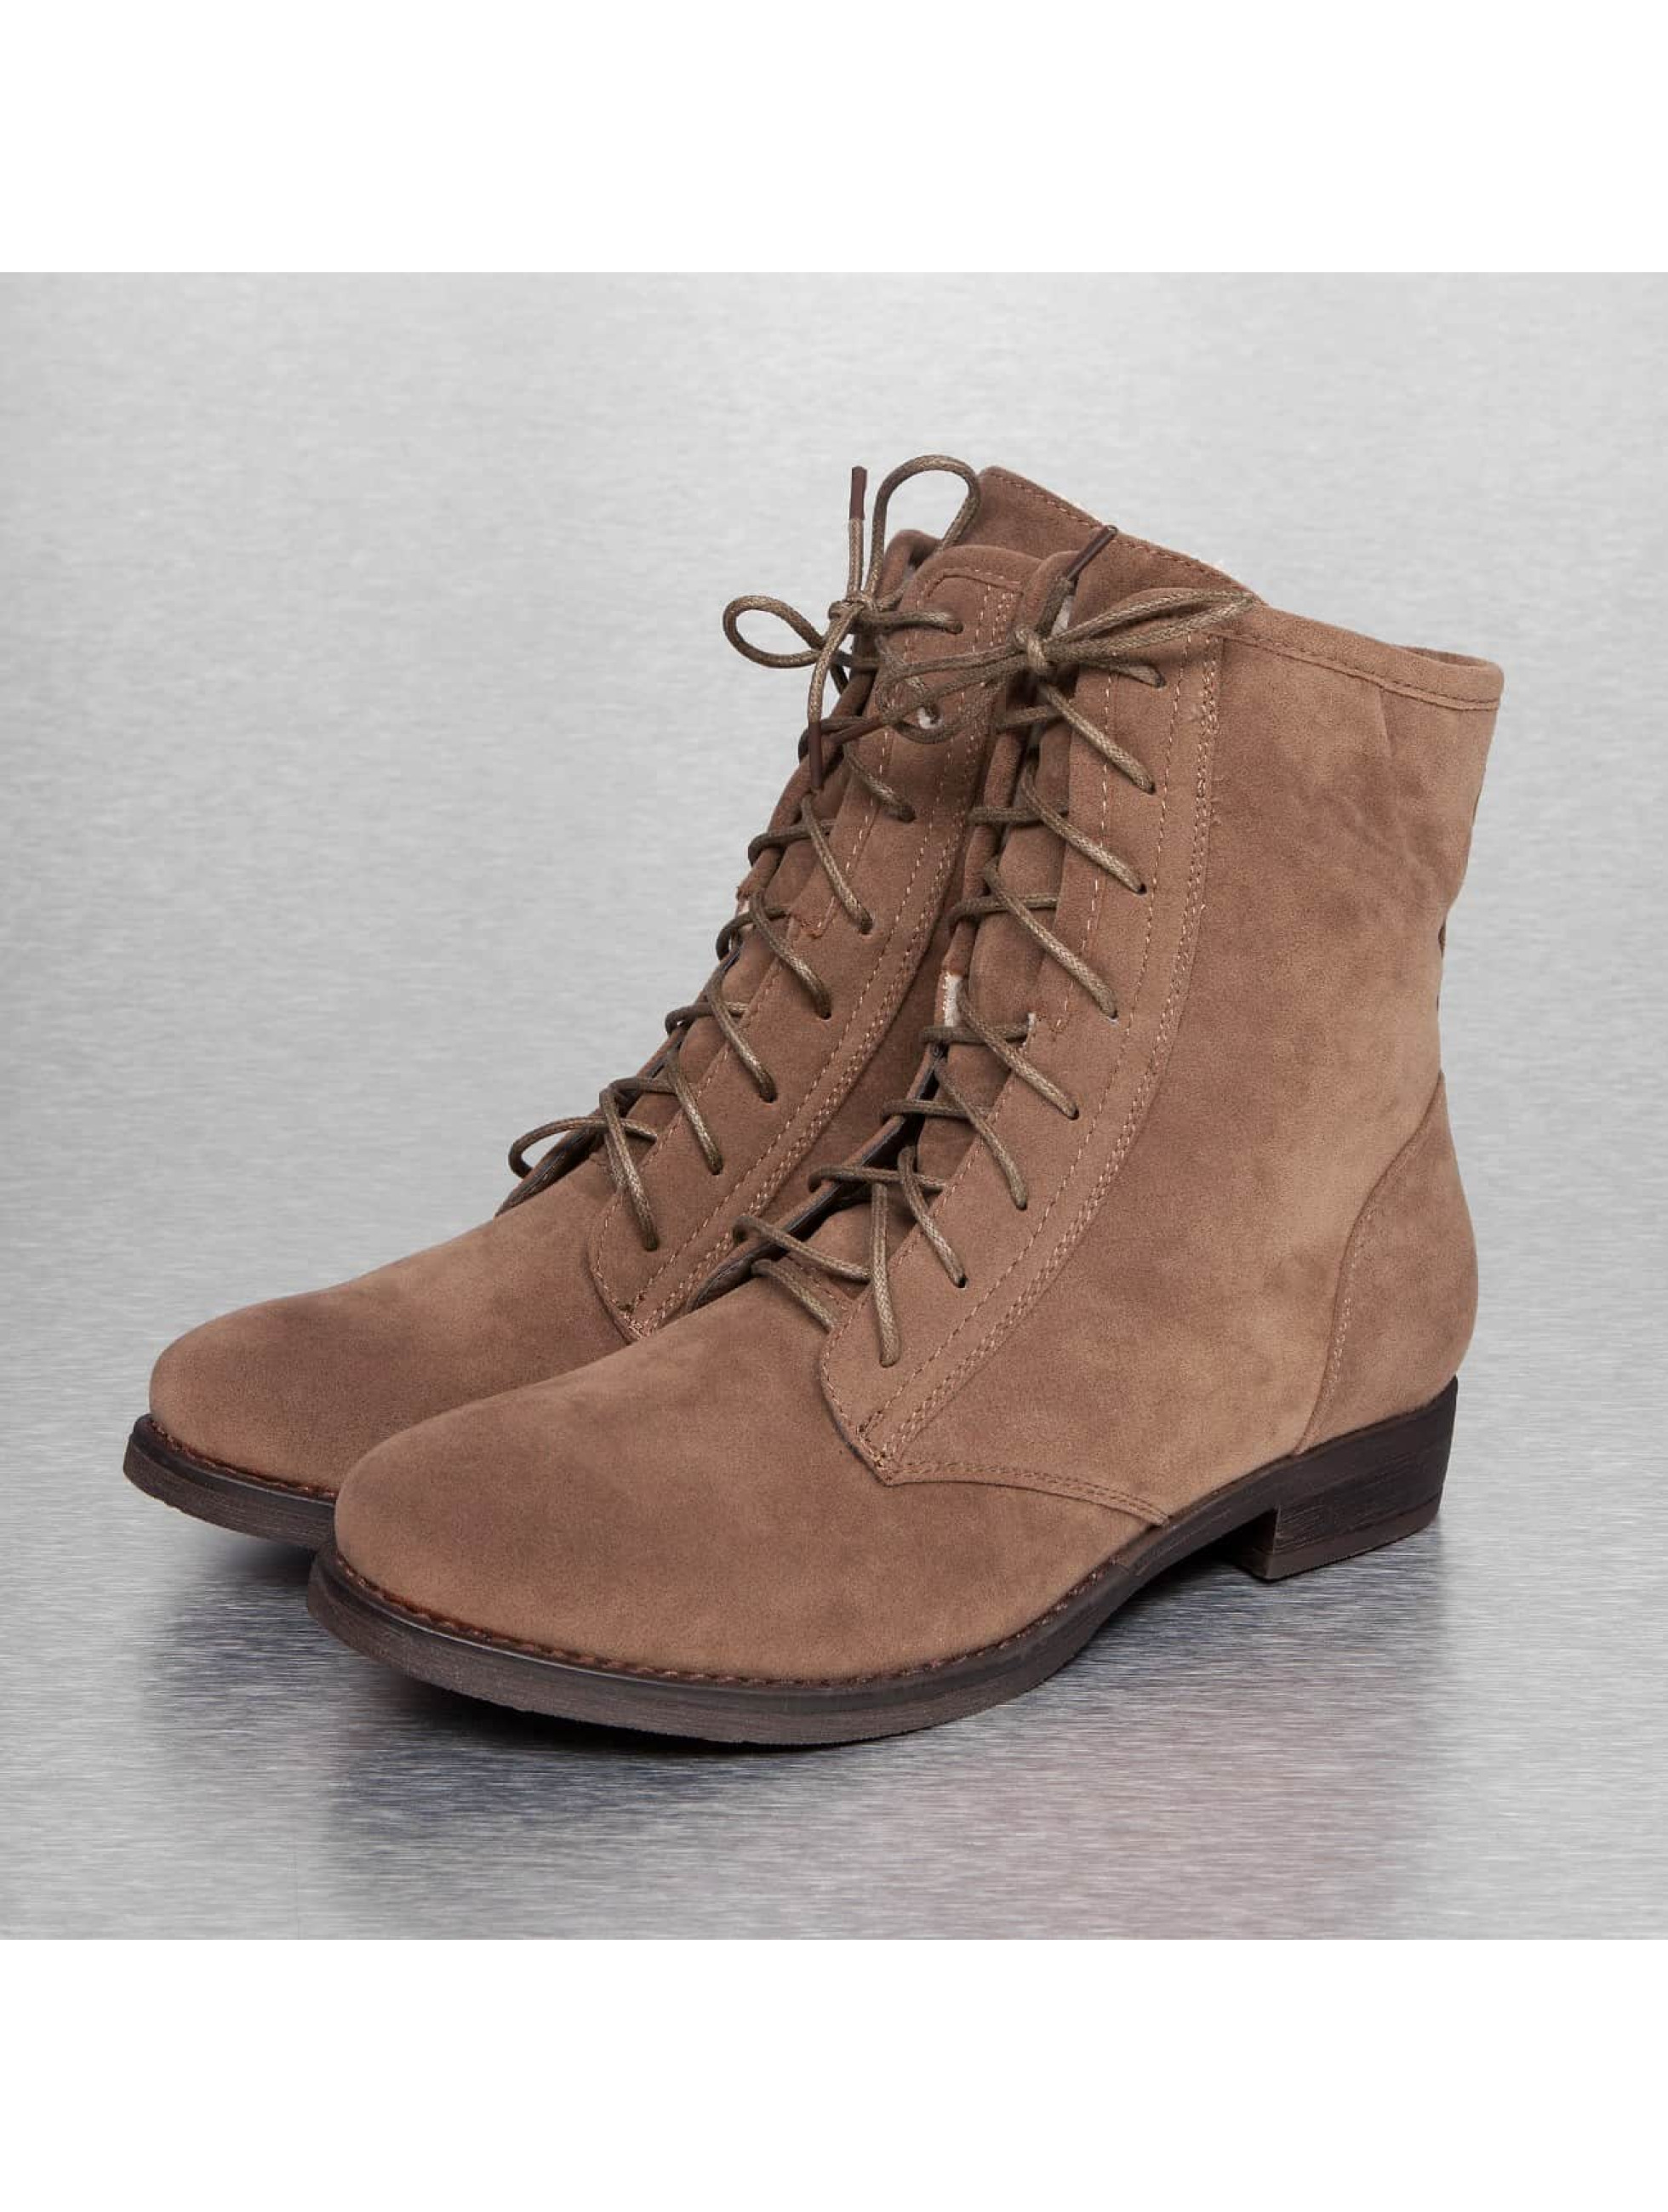 Jumex Frauen Boots Basic in khaki